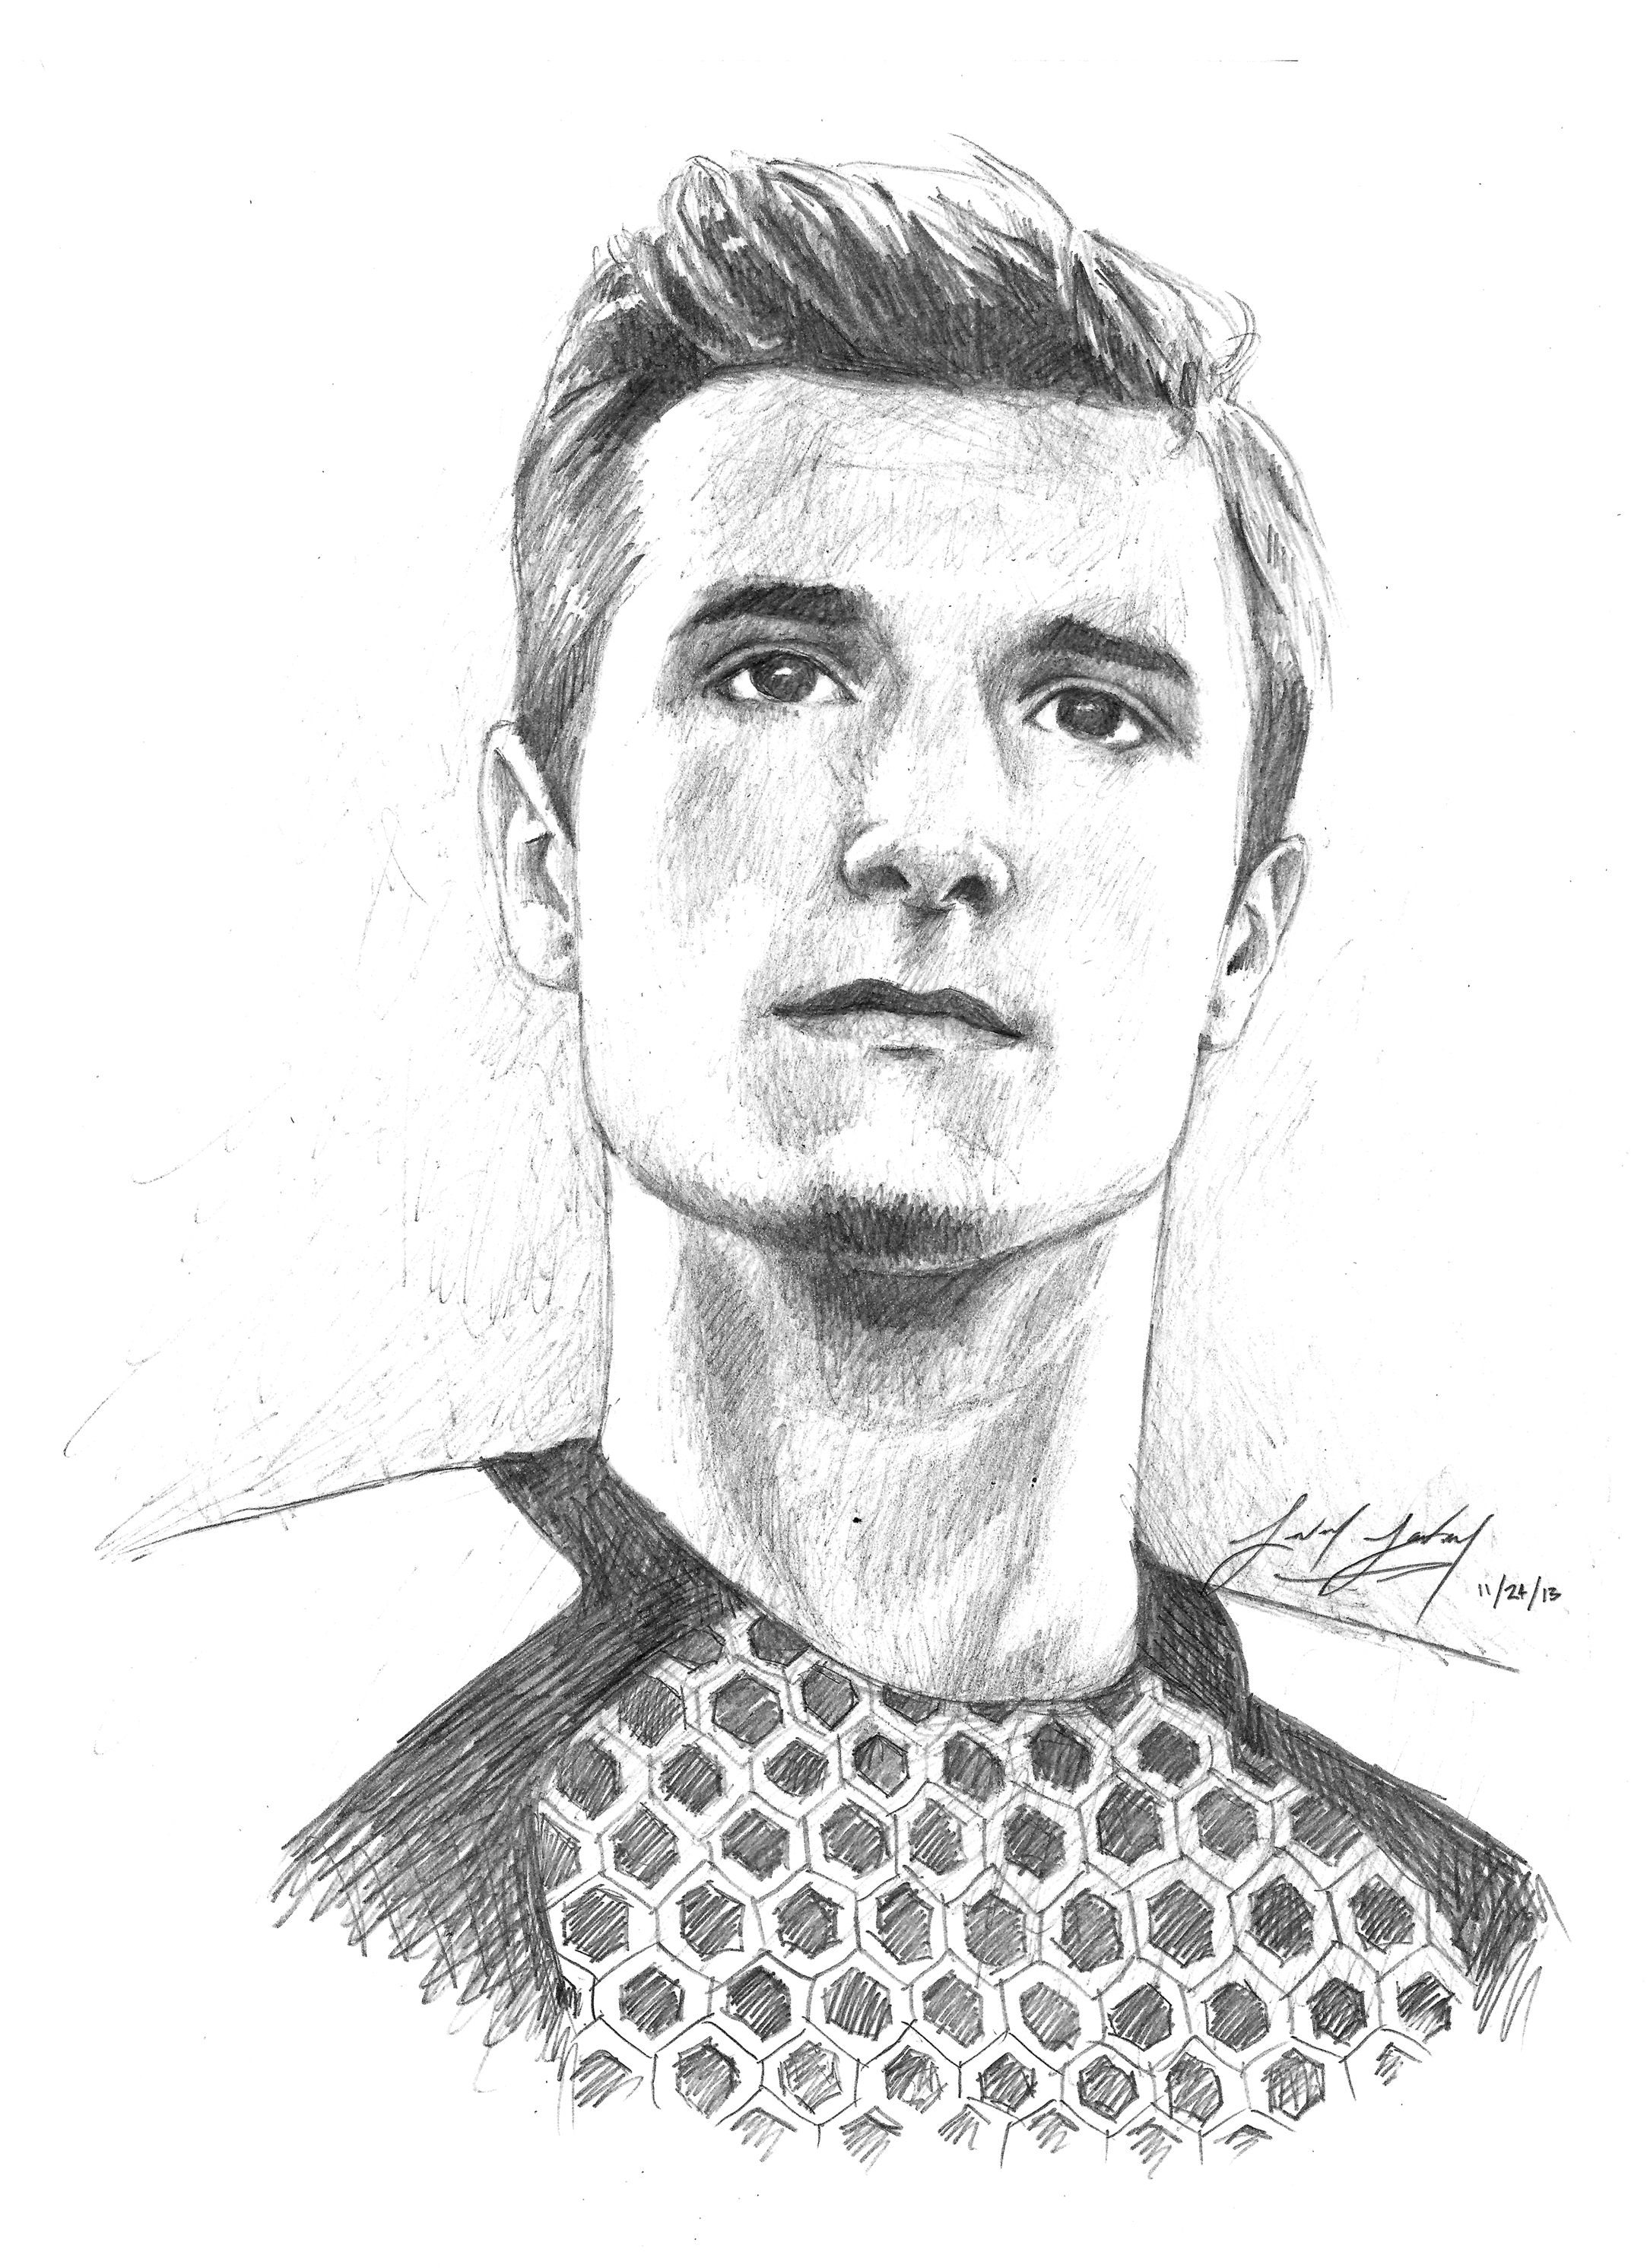 Josh Hutcherson As Peeta Mellark By Friedchicken365 On Deviantart